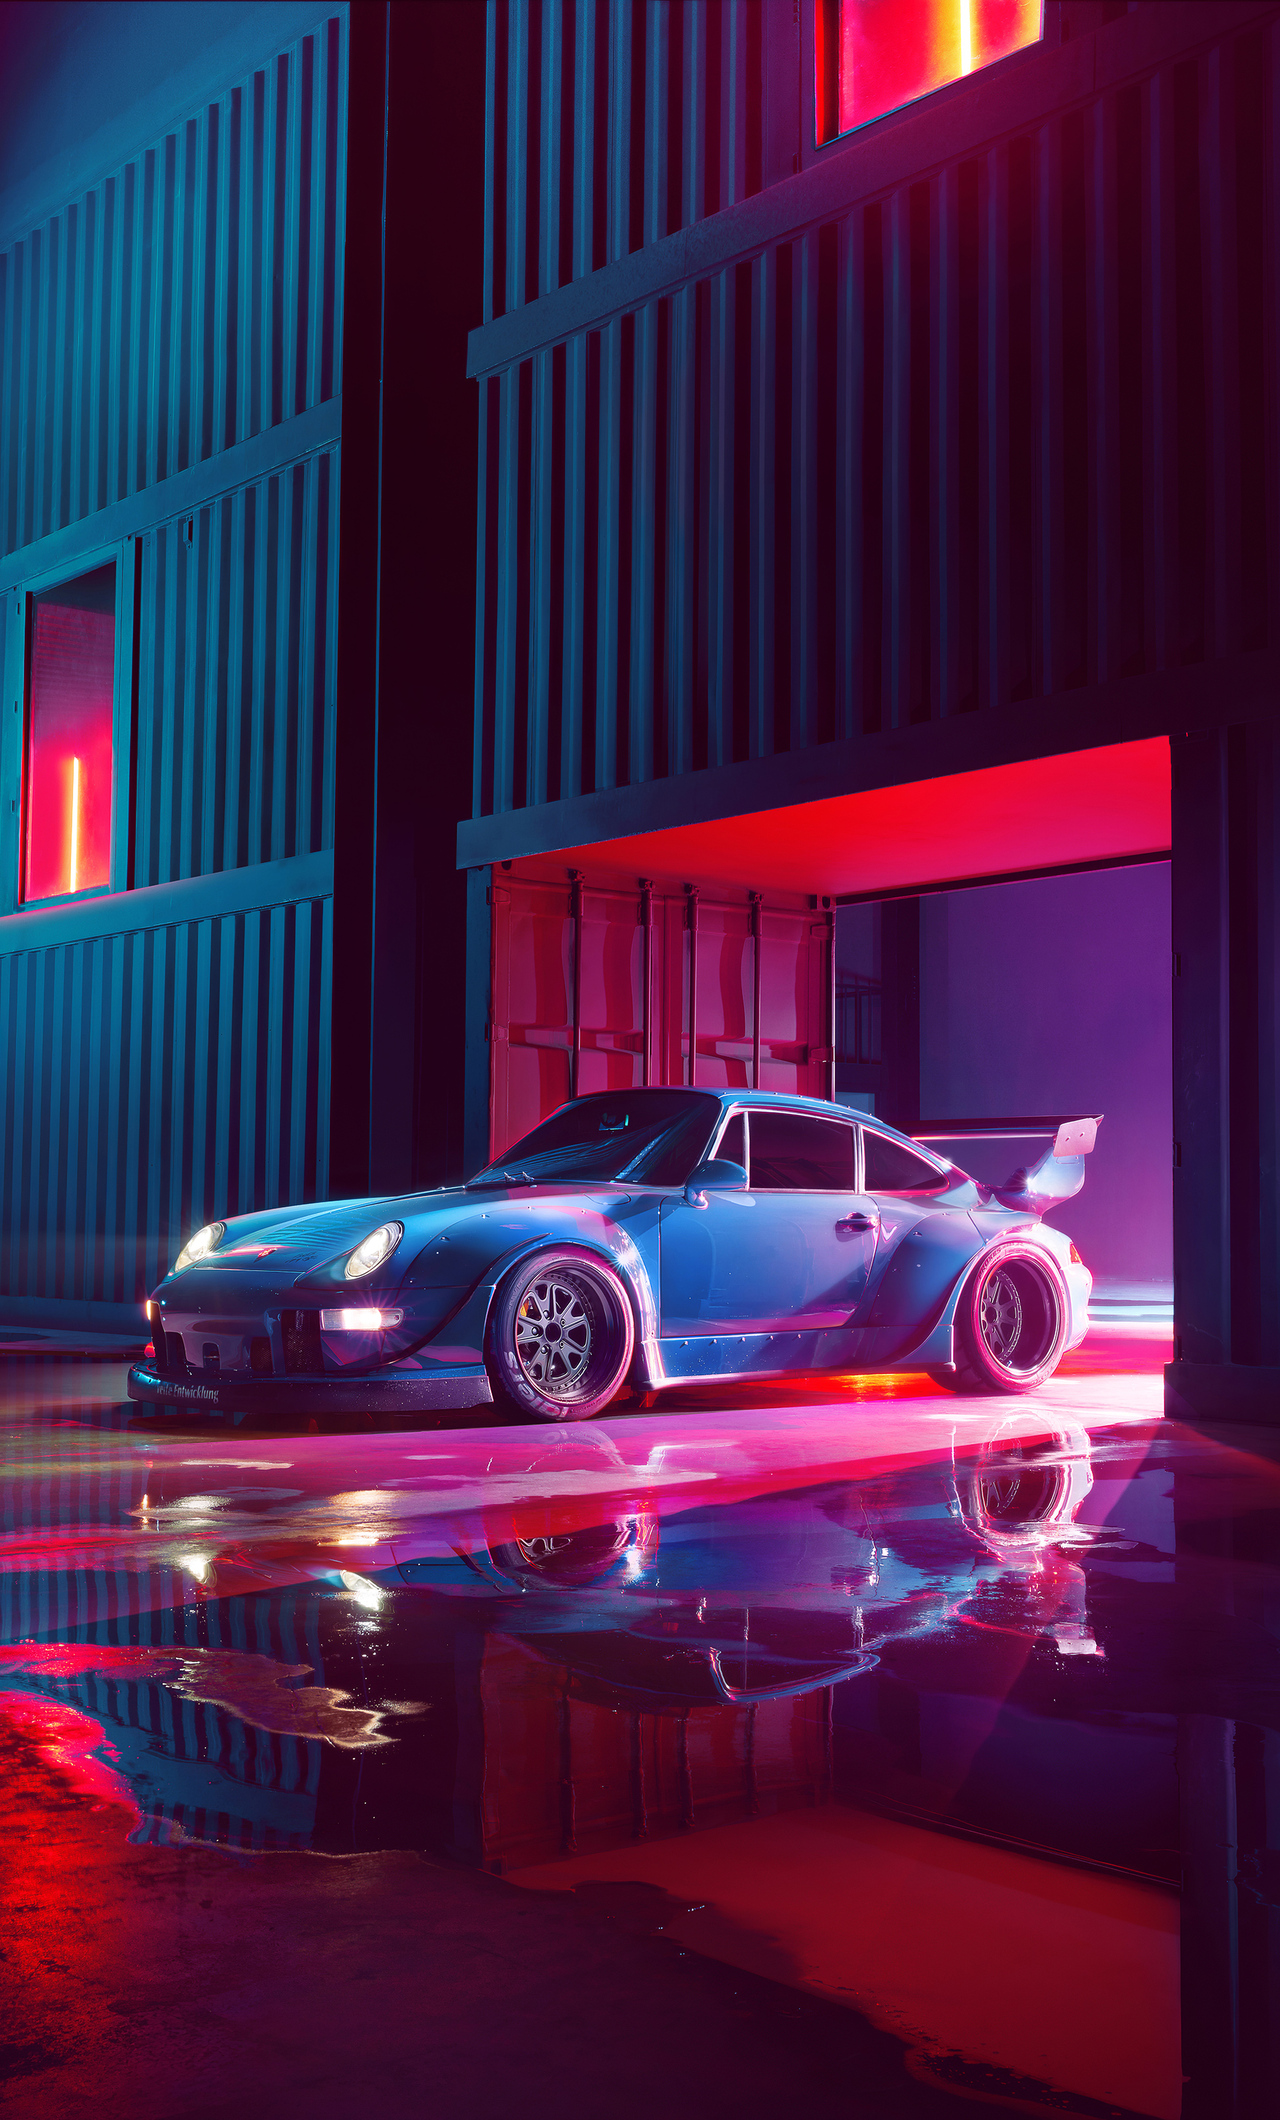 1280x2120 Porsche Rwb Concept 4k Iphone 6 Hd 4k Wallpapers Images Backgrounds Photos And Pictures